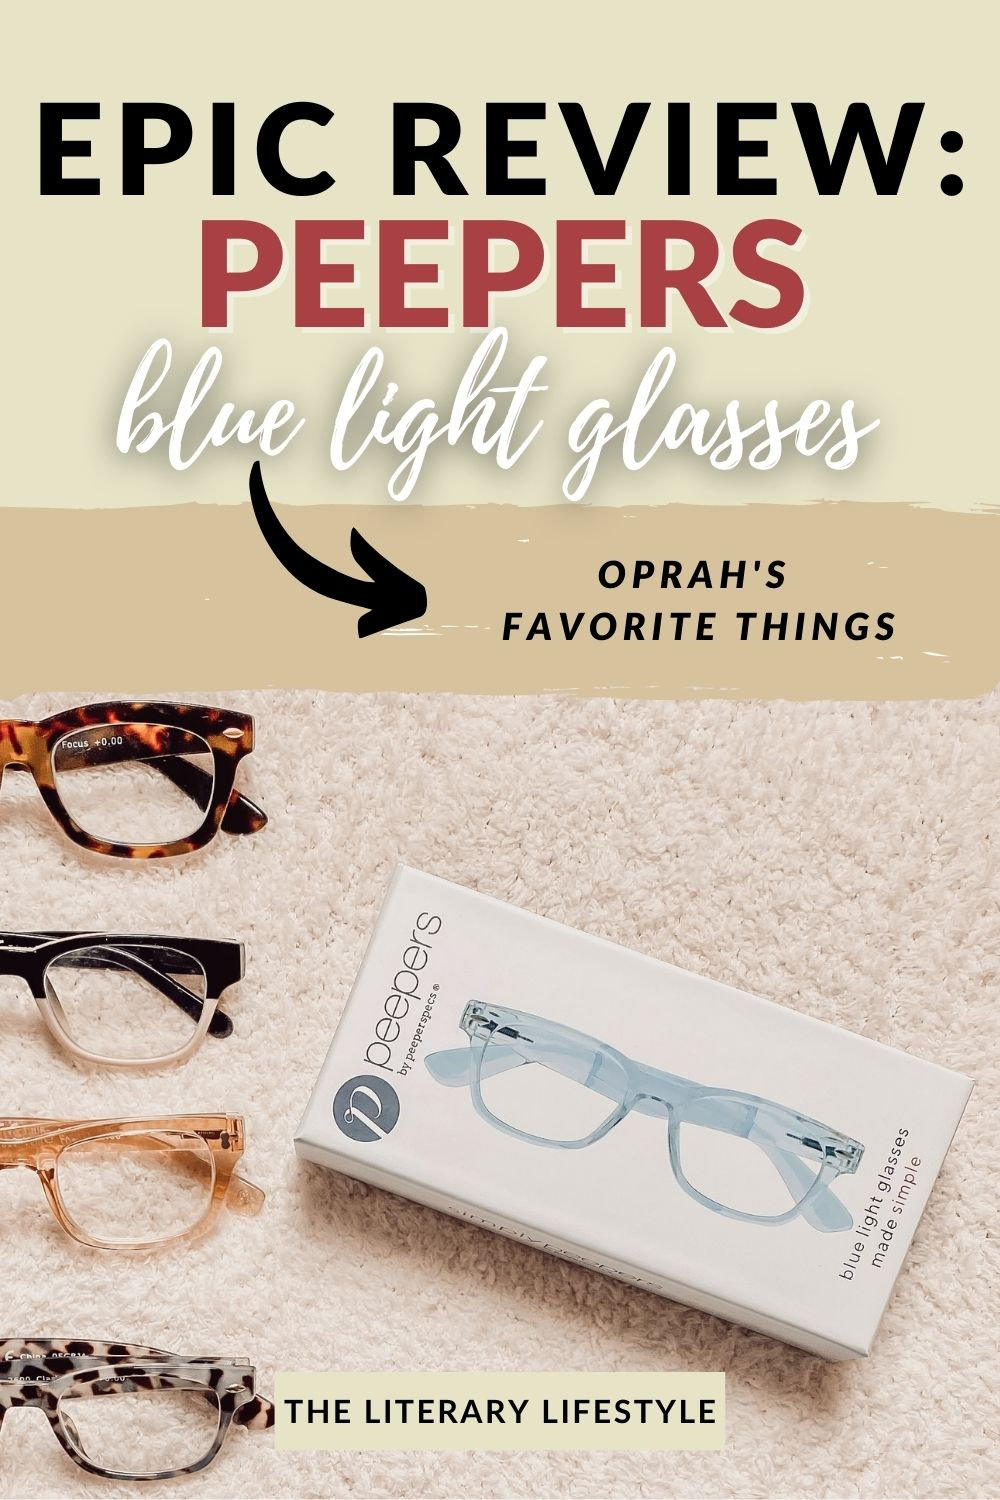 Review of Peepers Blue Light Glasses